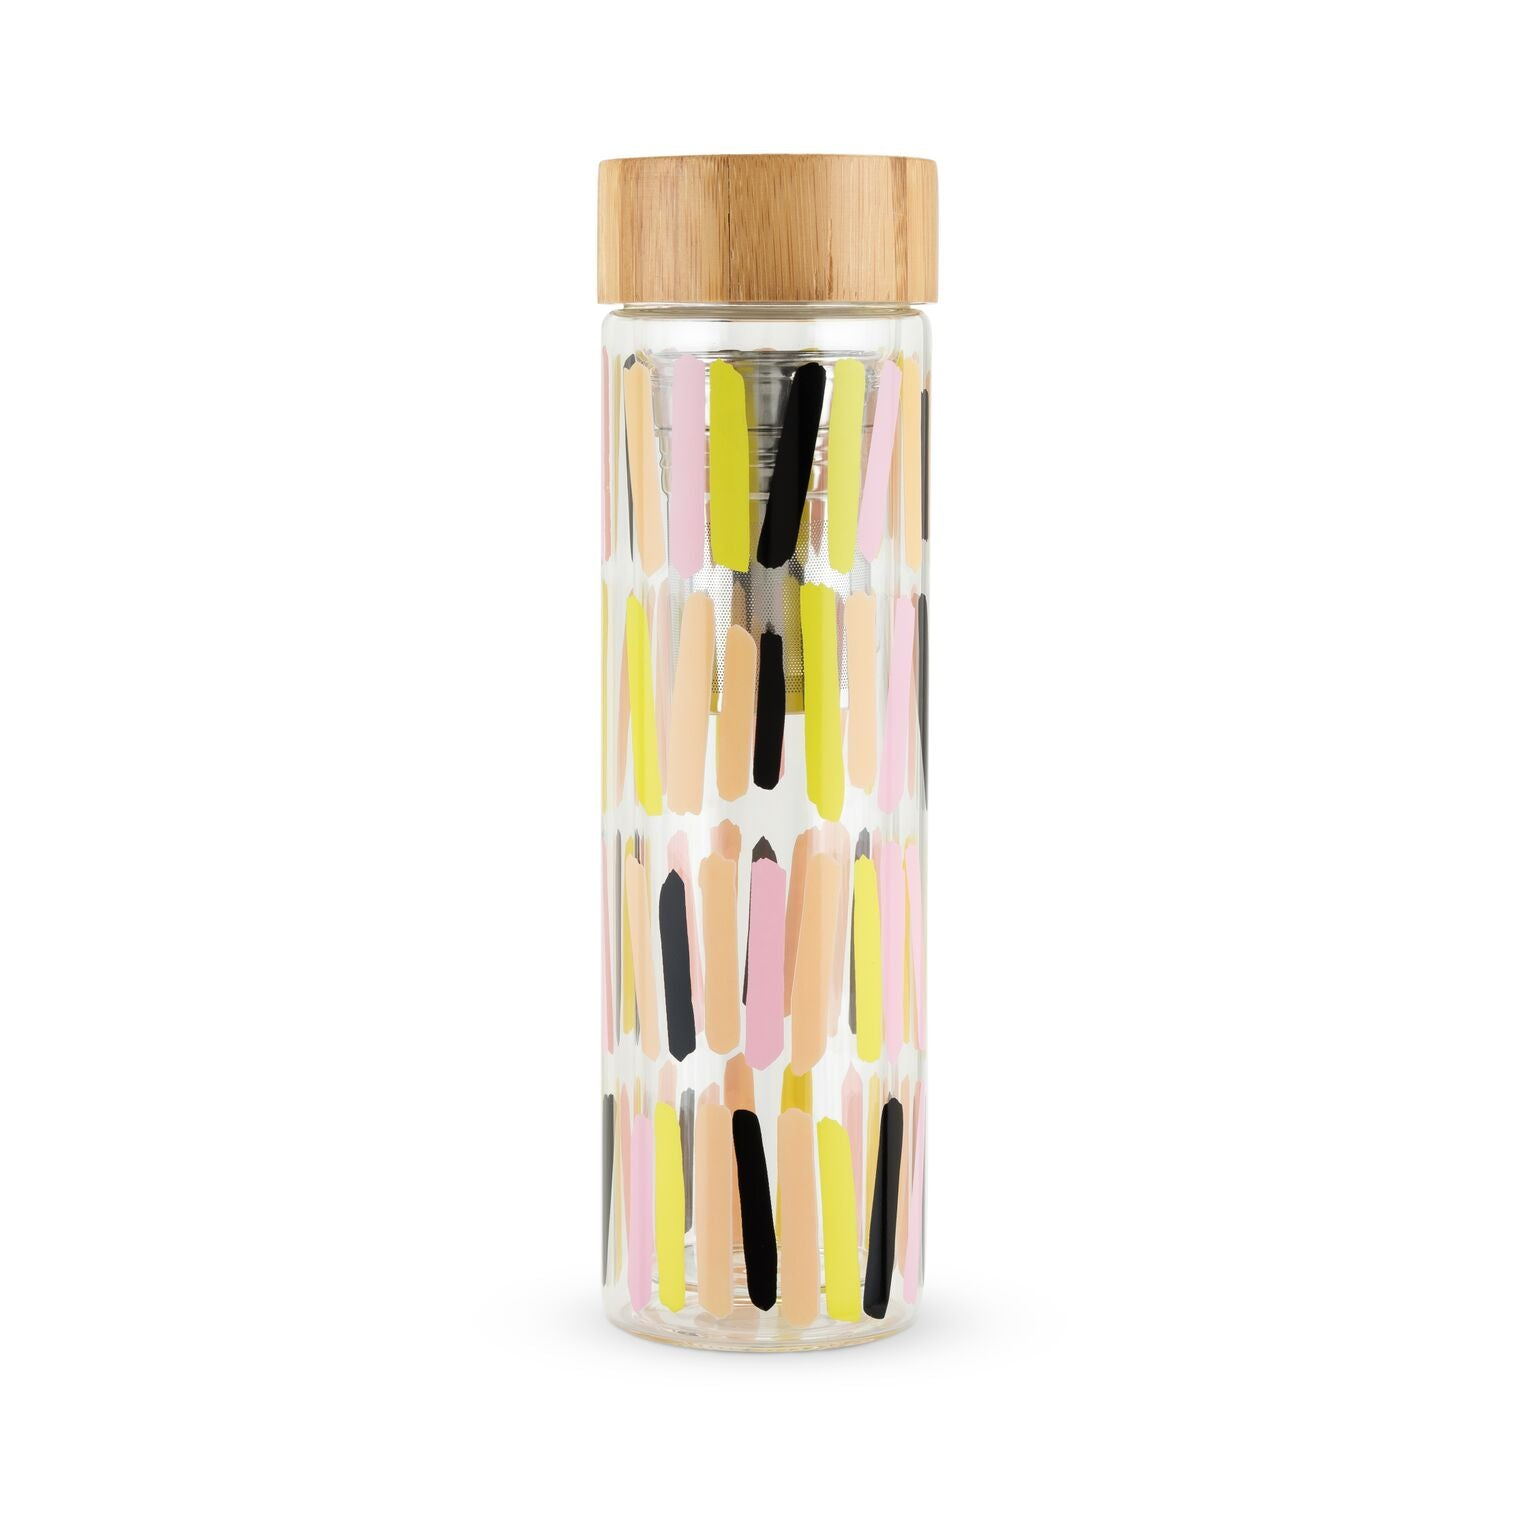 Blair Sprinkles Glass Travel Infuser Mug by Pinky Up